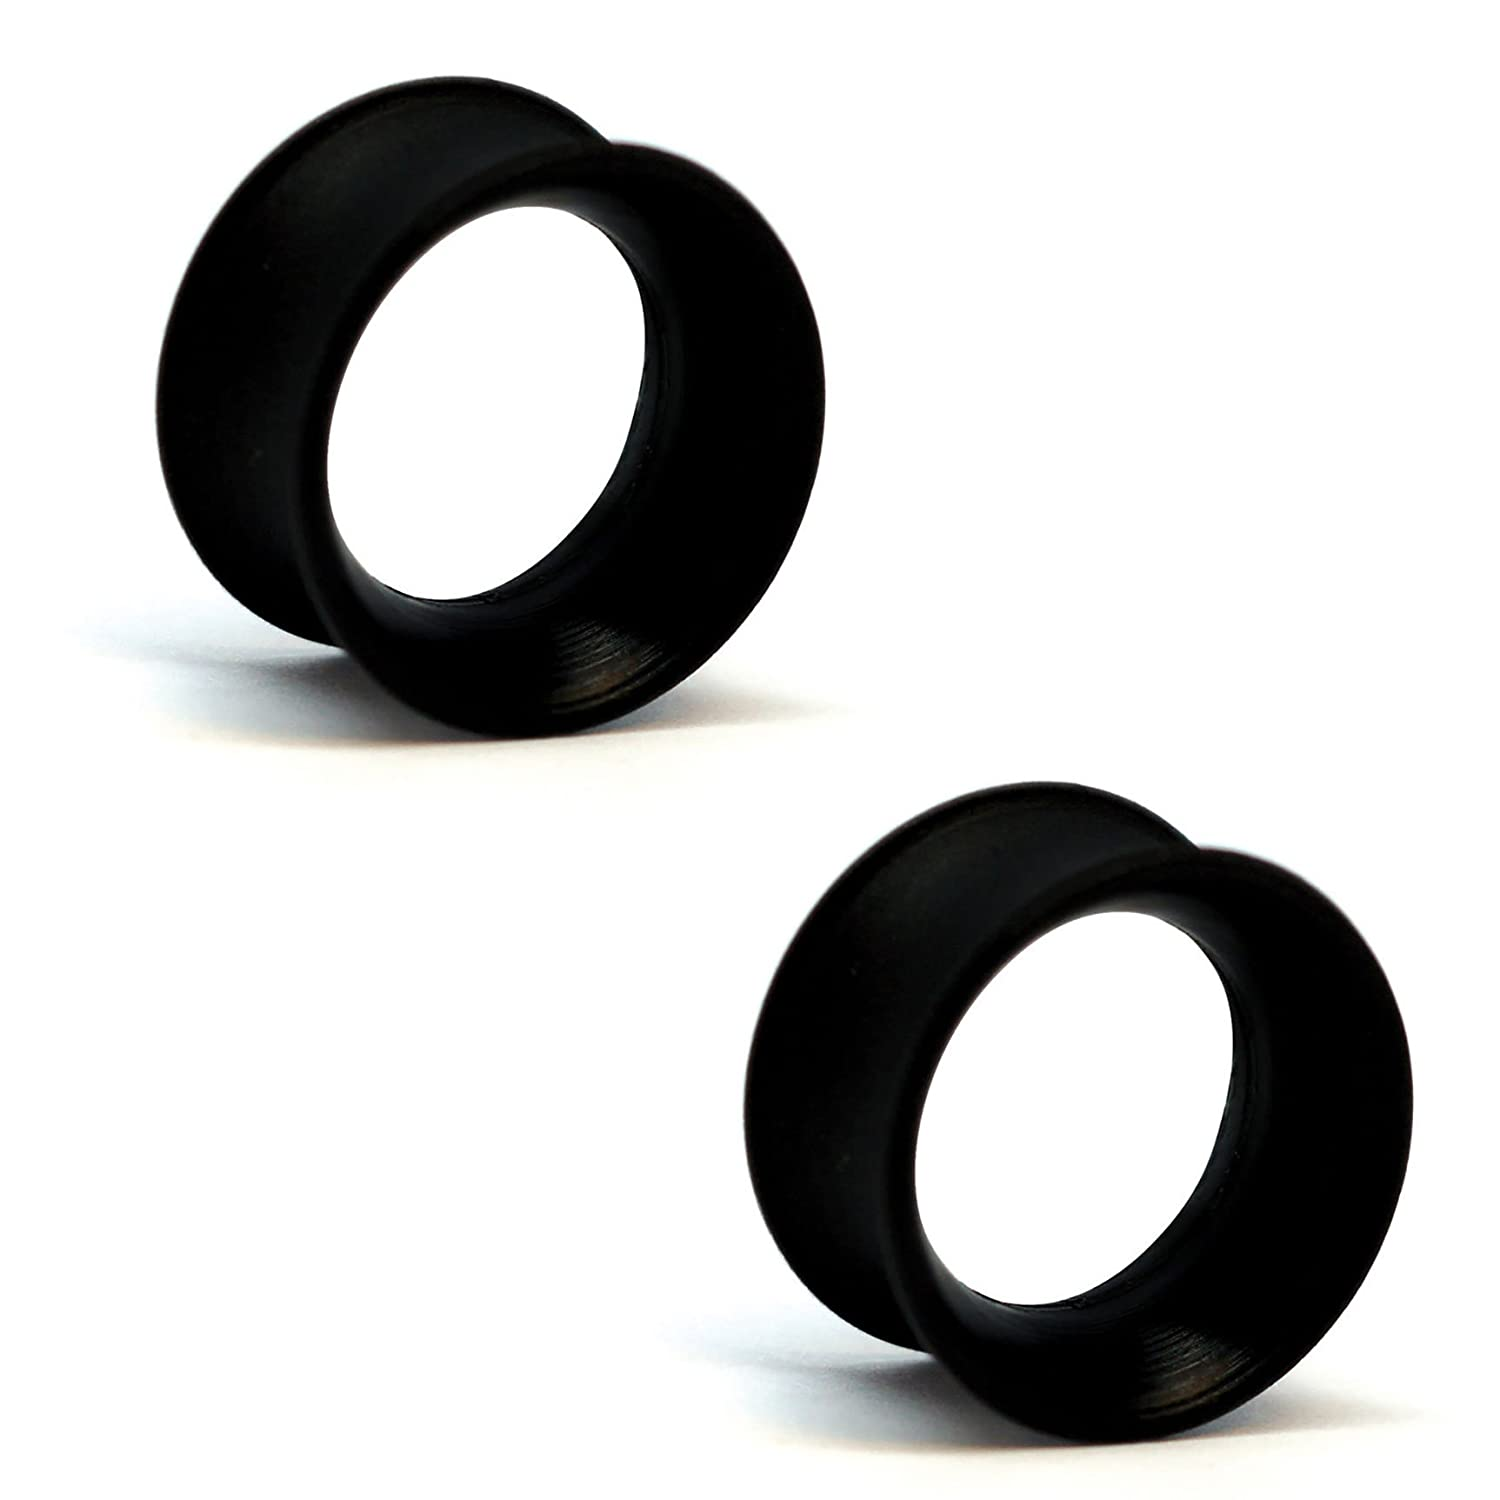 Pair of Silicone Double Flared Skin Eyelets: 00g, wearable length: 5/16